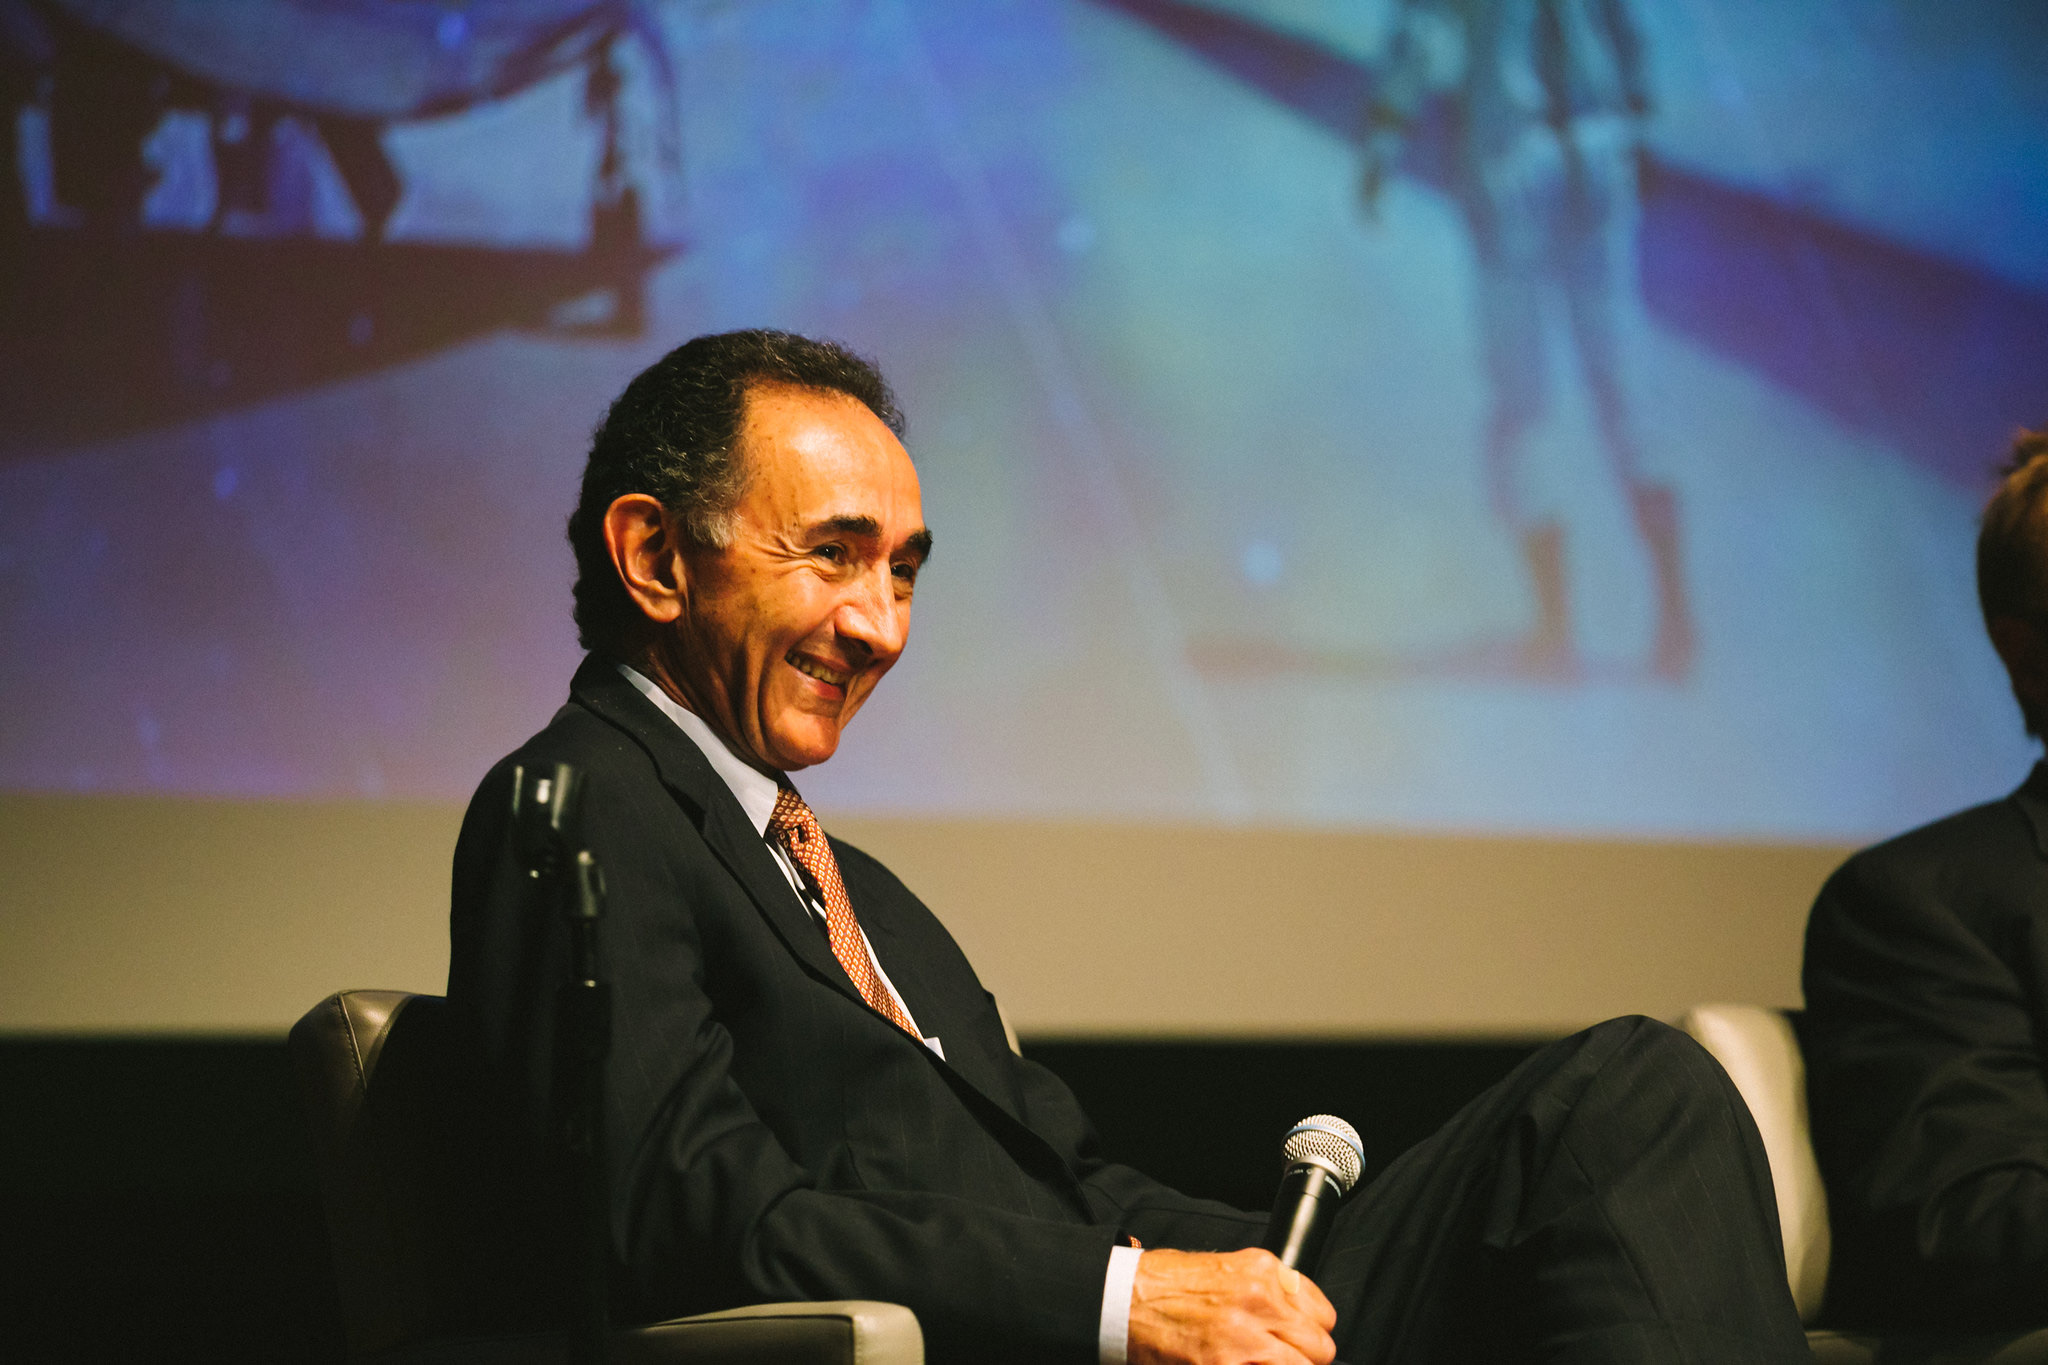 Los Angeles Times Journalist Ralph Vartabedian moderates the panel